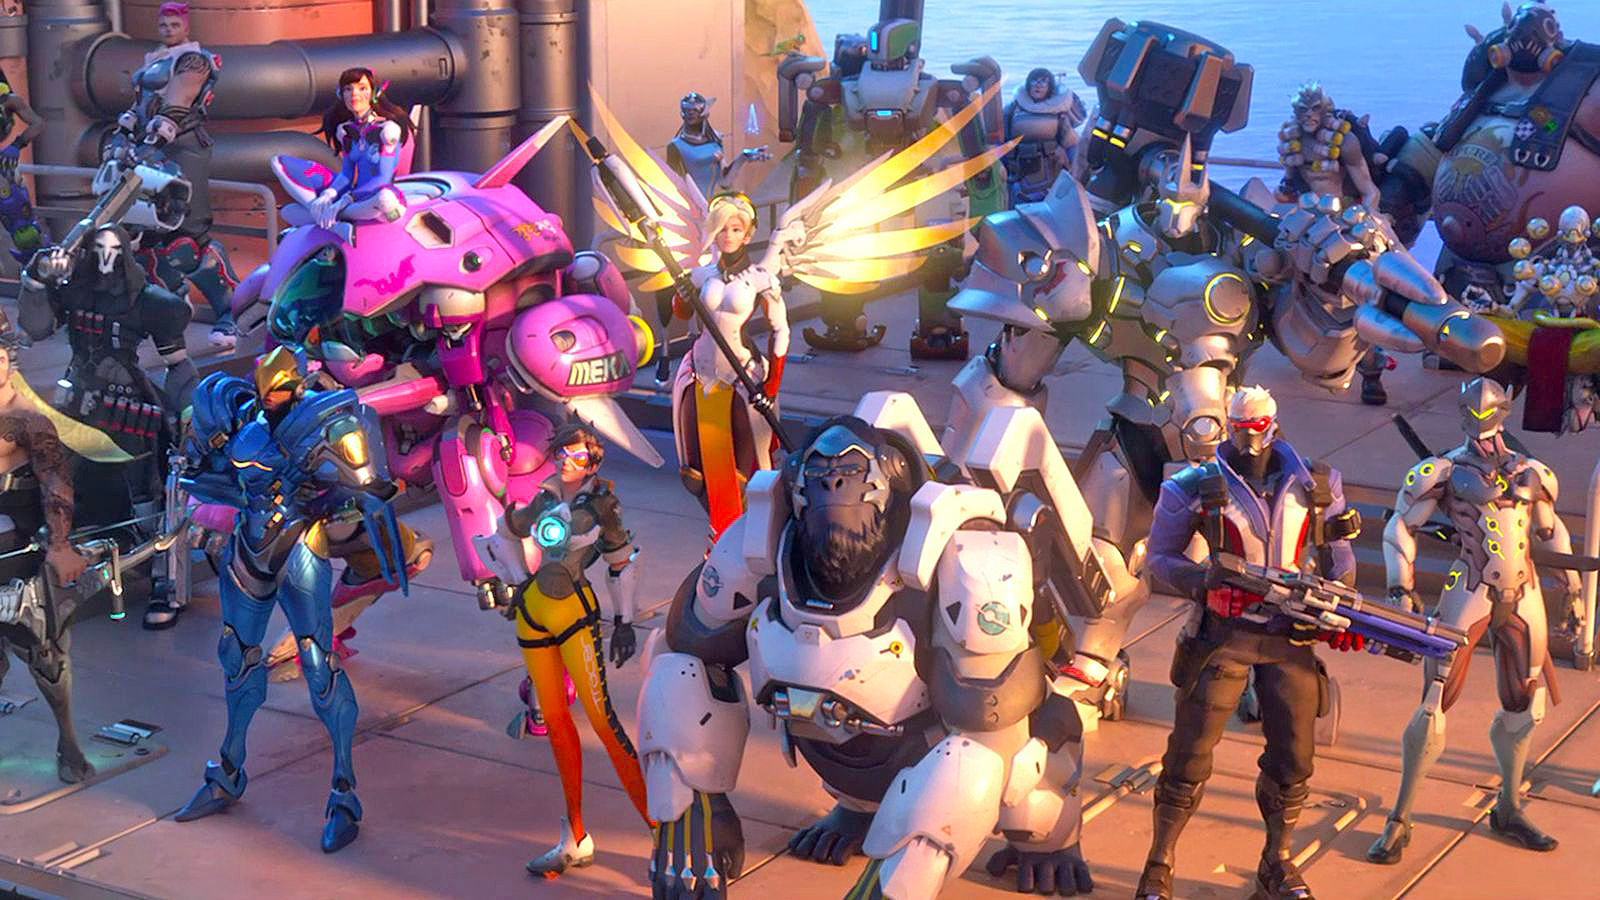 Overwatch's Next Character May Not Be Doomfist, According To Game Director